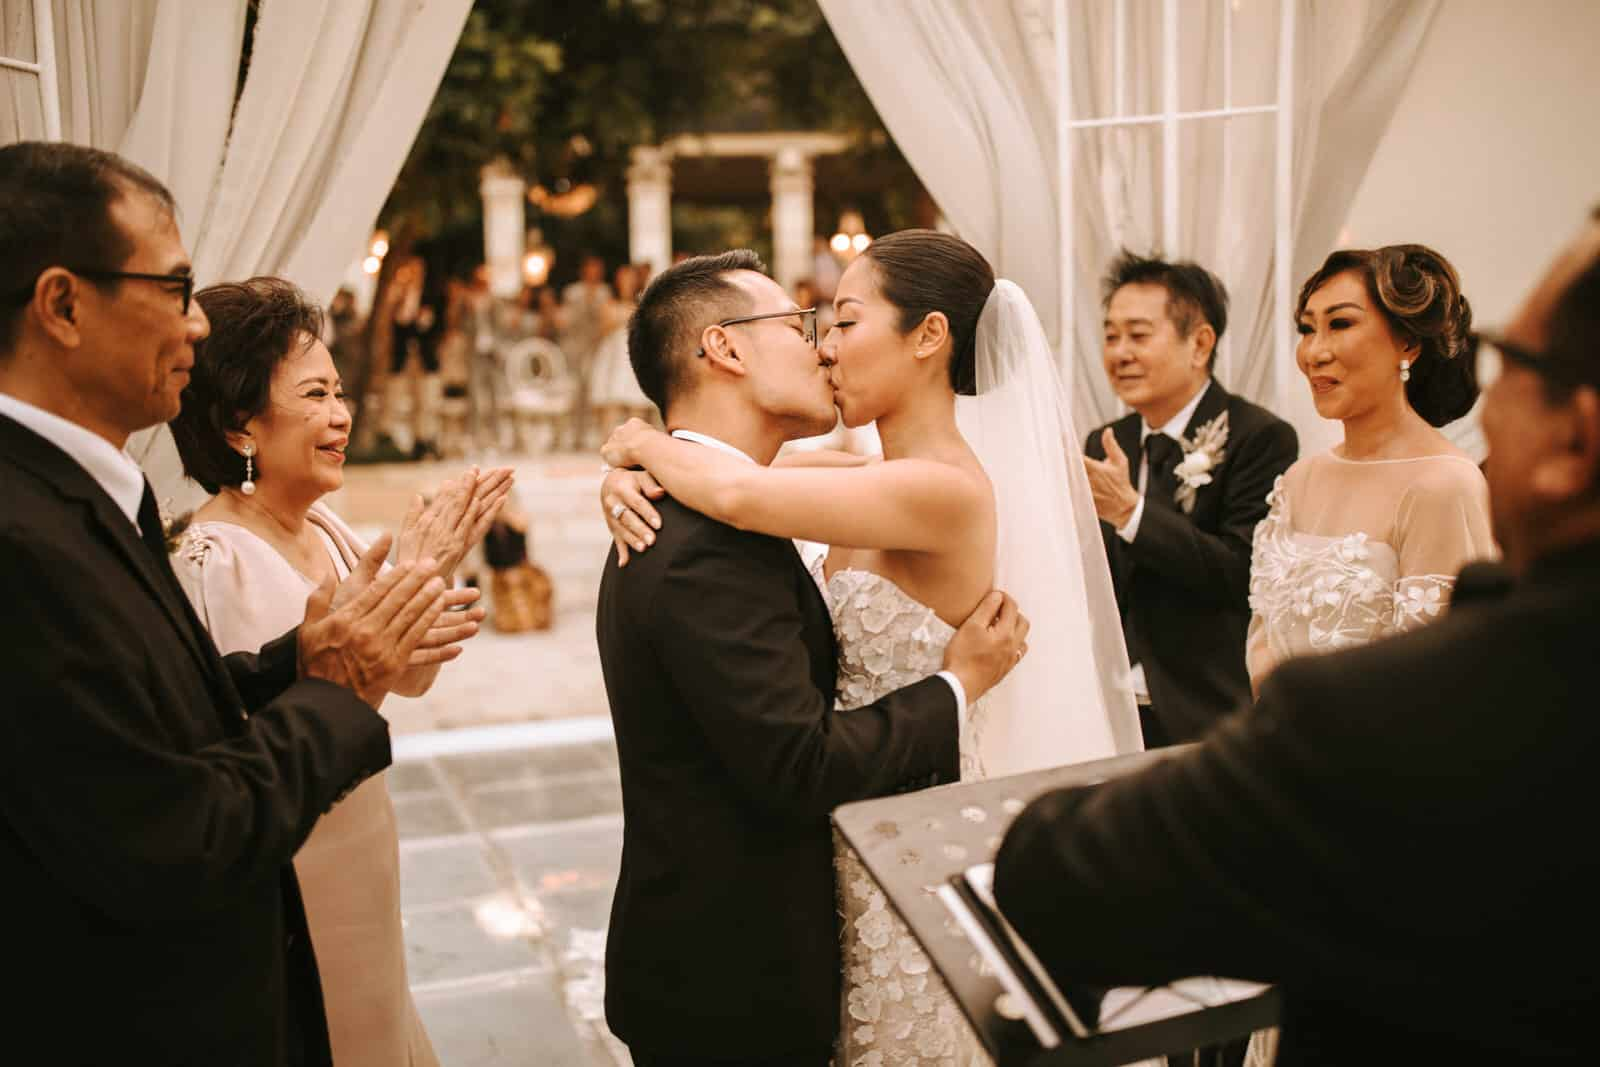 The wedding couple is kissing each other.